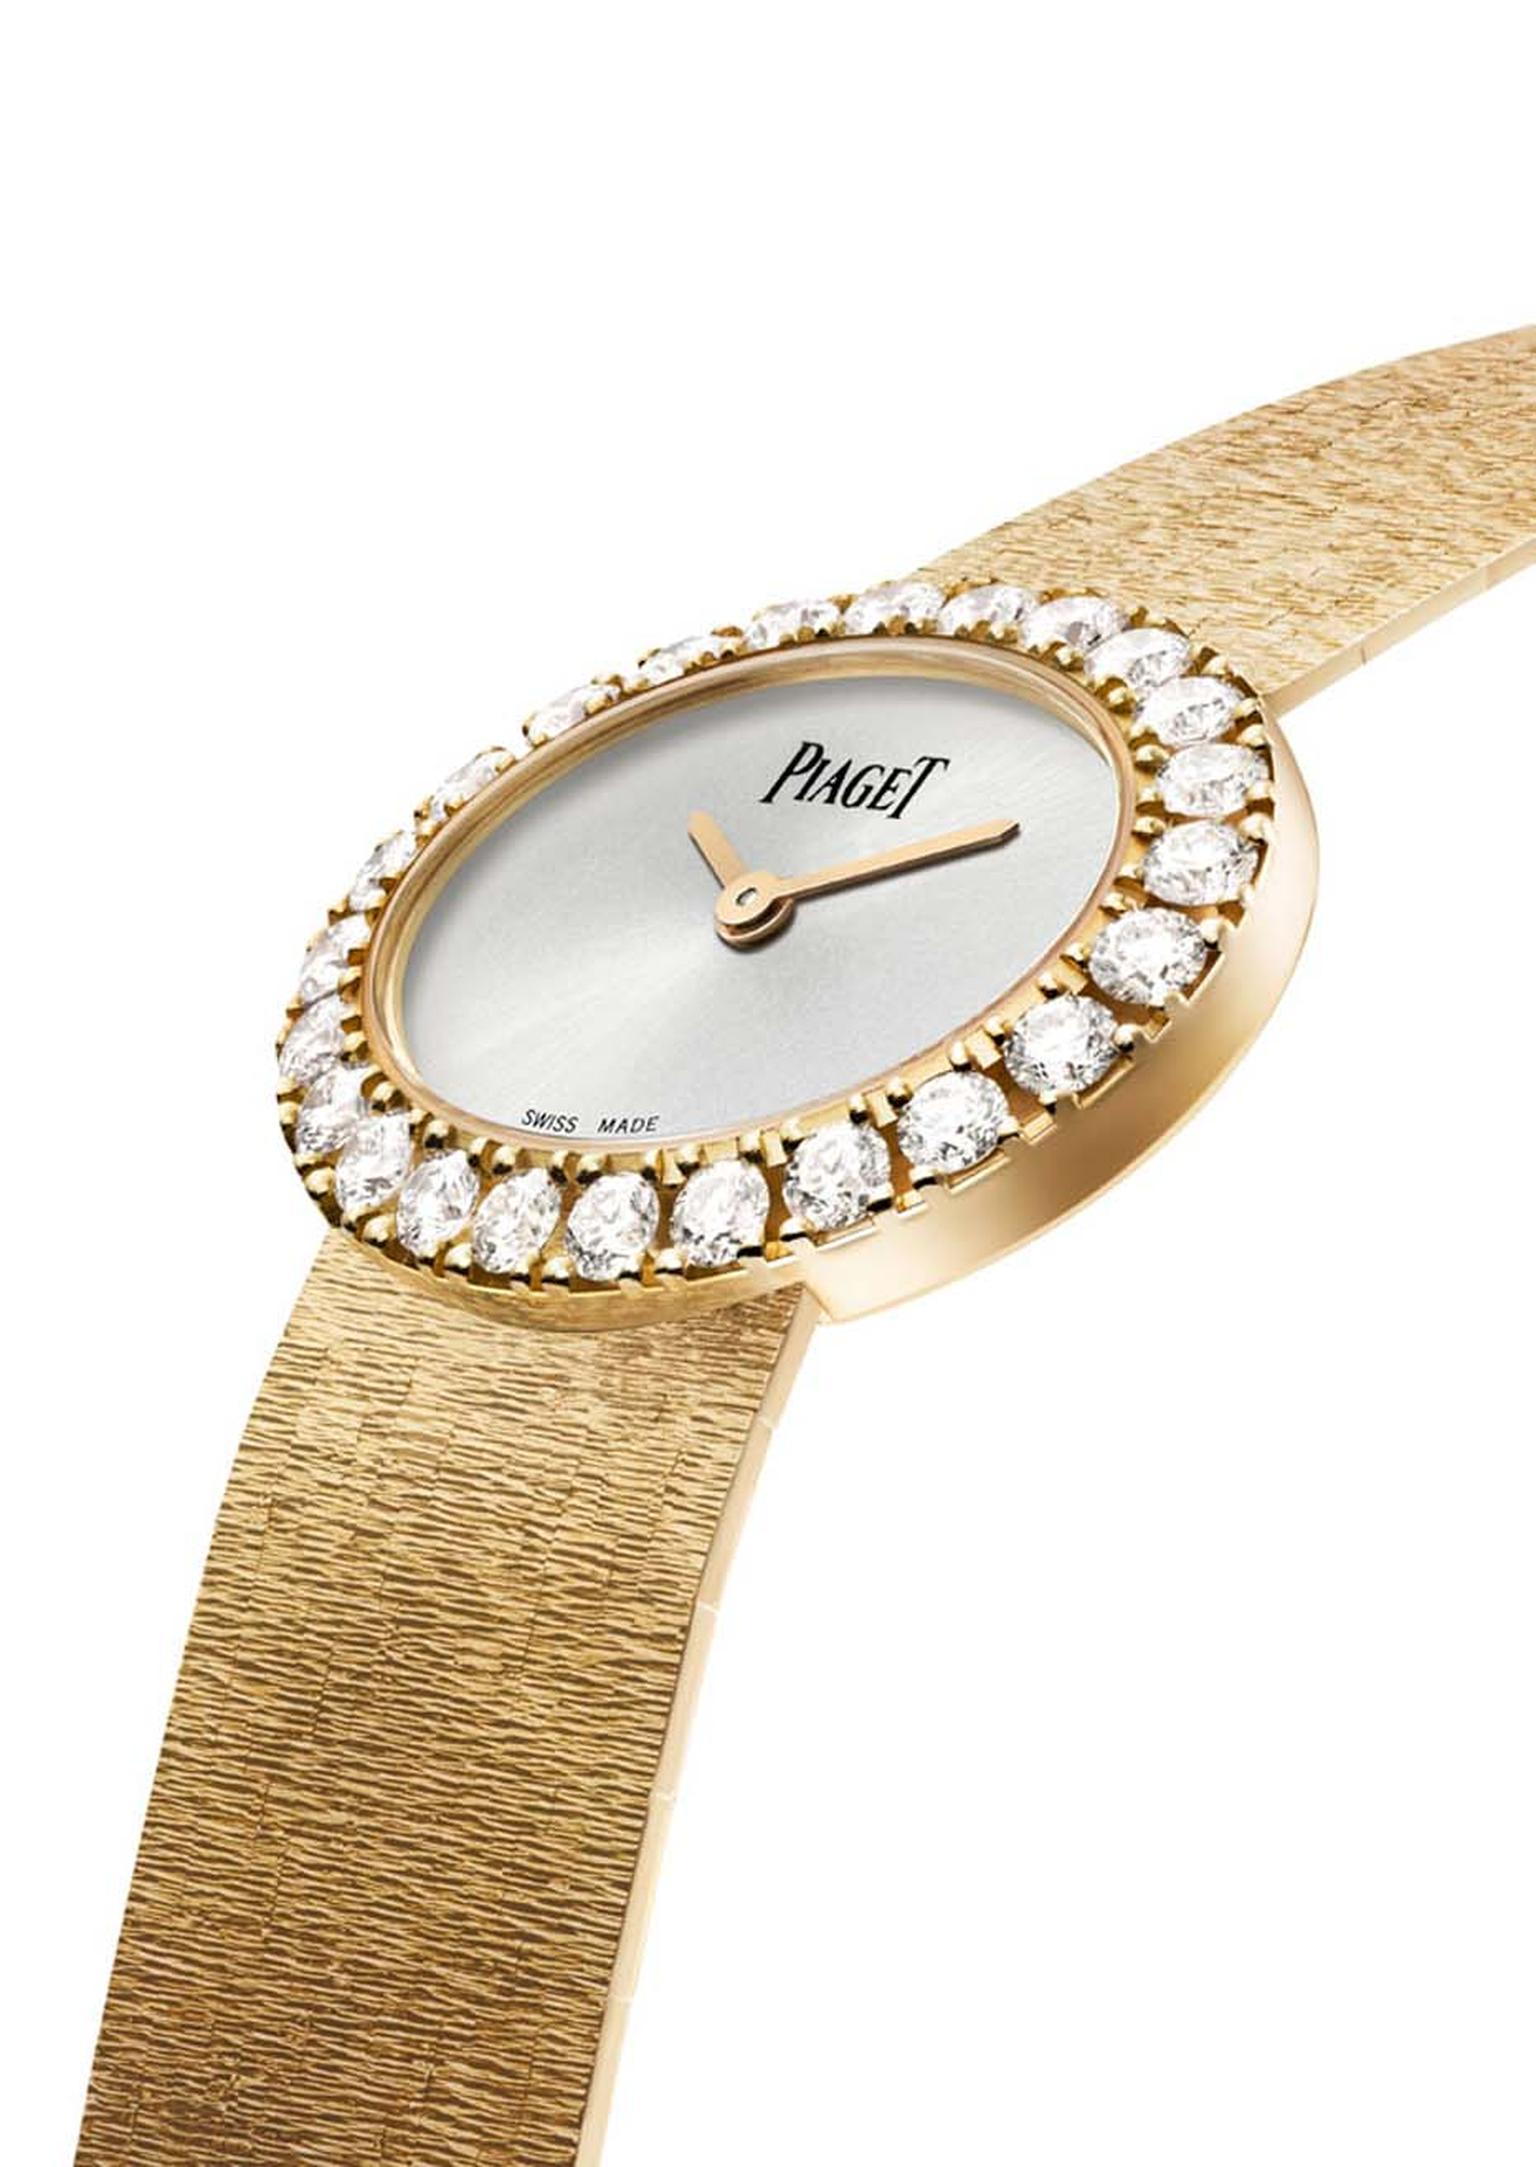 The slim case of the Piaget Gold Oval watch features a diamond bezel surrounding an uncluttered soft silver tone dial.